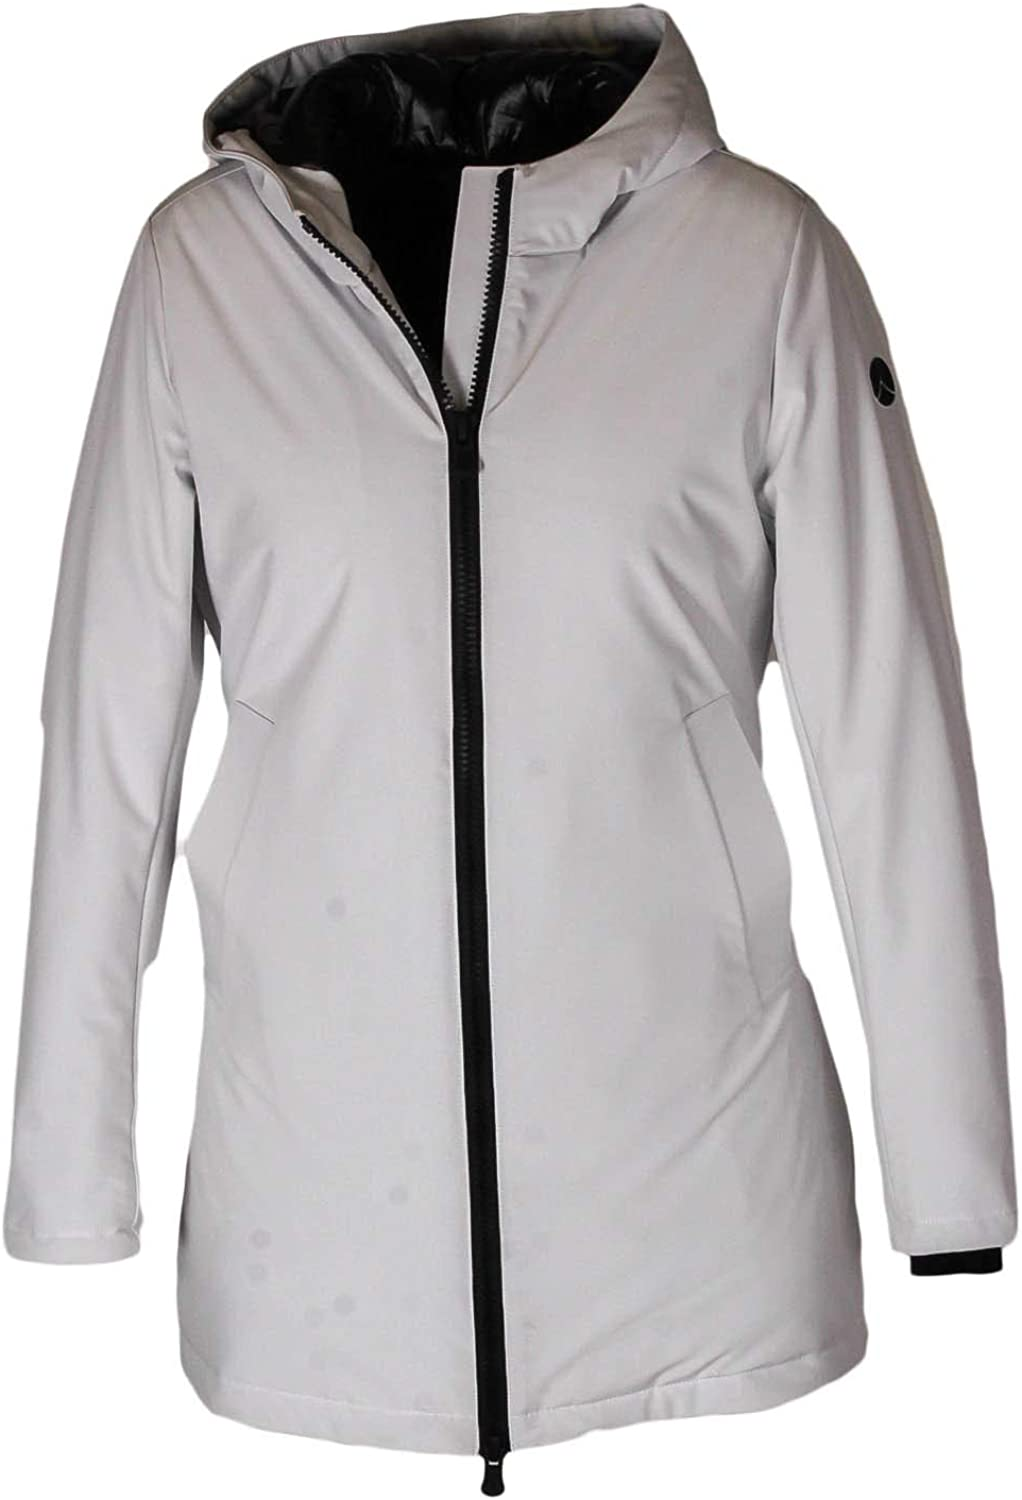 Chaqueta impermeable con relleno sint/ético People OF